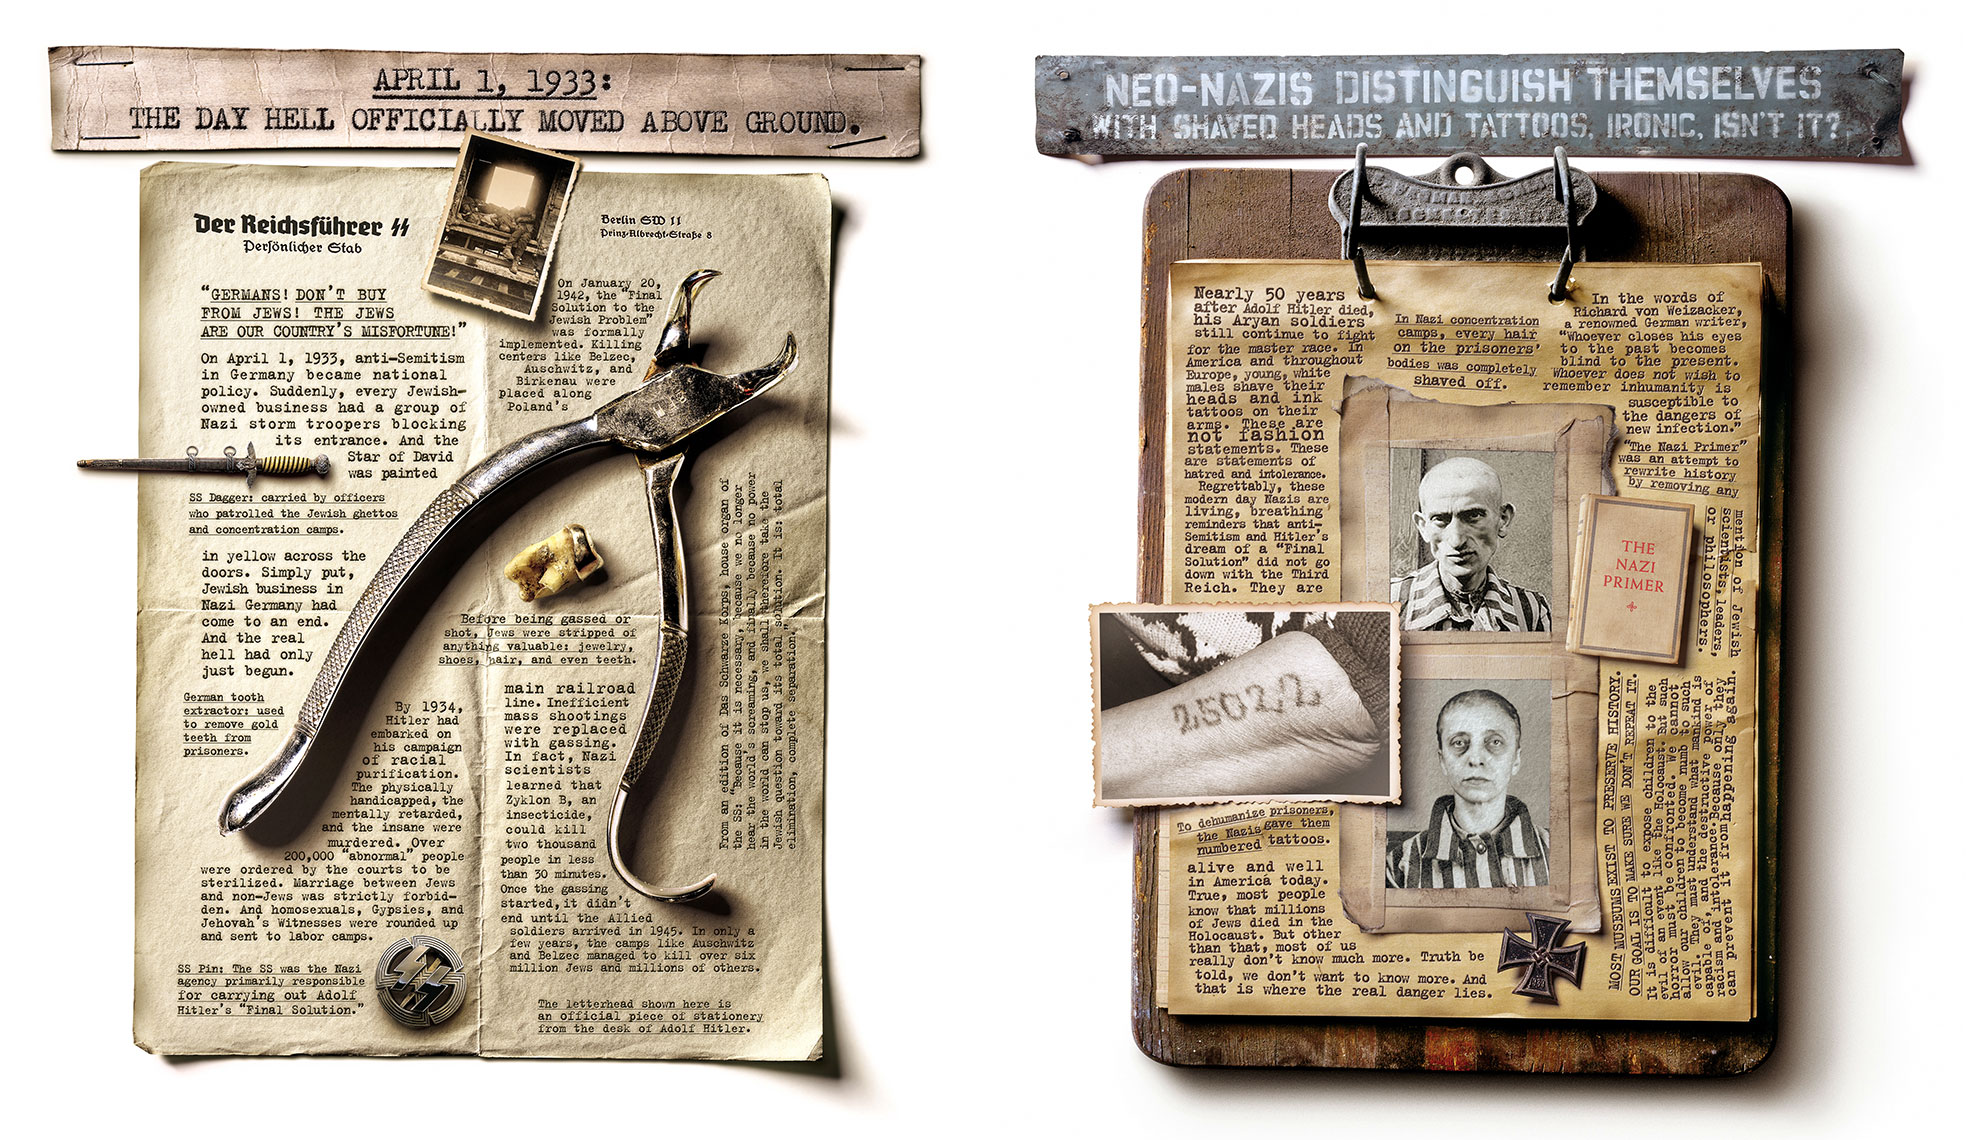 Photo Illustration and Retouching on Martin-Agency-Holocaust_Together